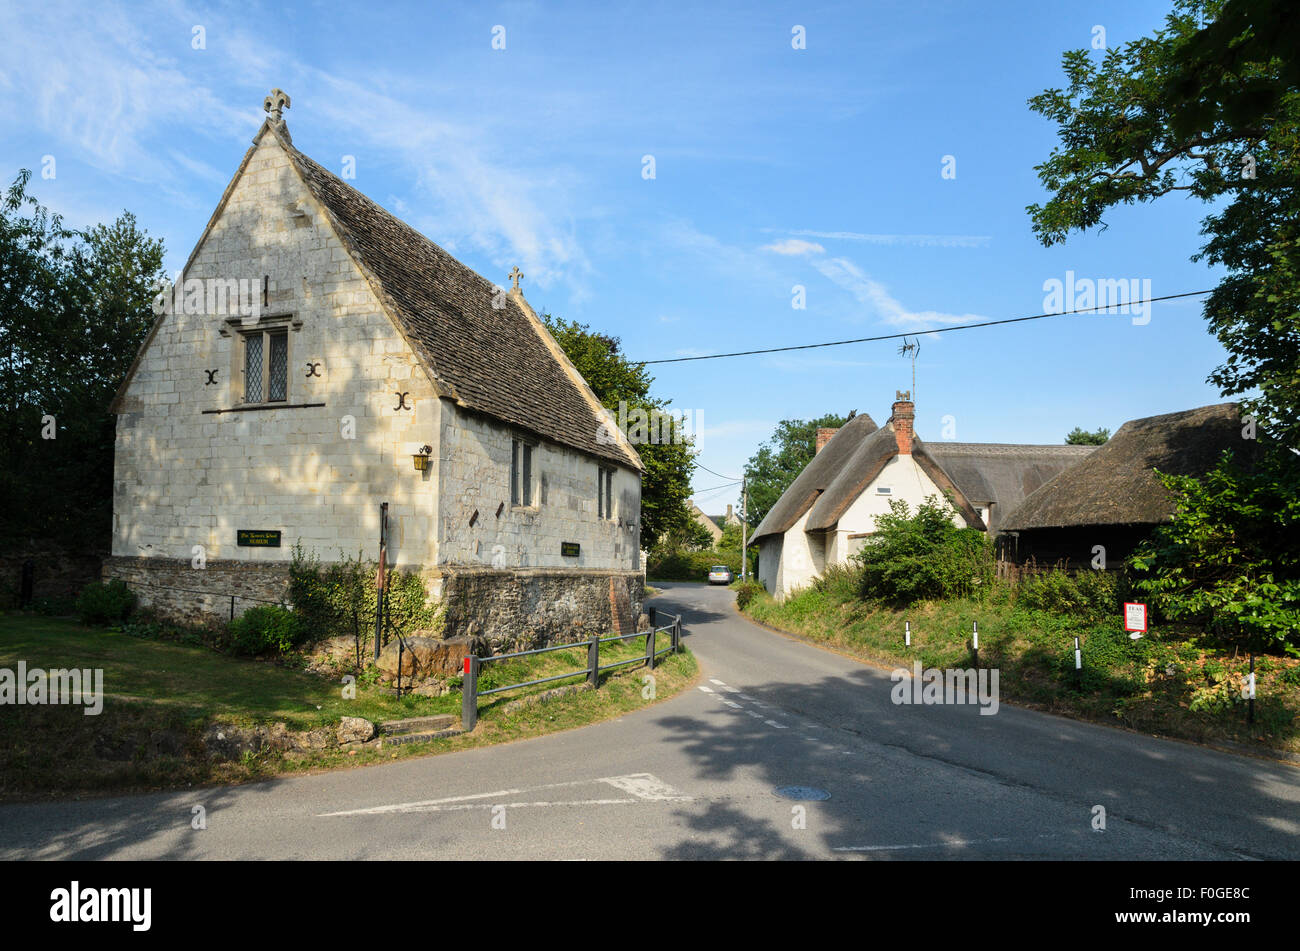 The building which served as the inspiration for the village school in the novel  Tom Brown's School Days, Uffington, Stock Photo